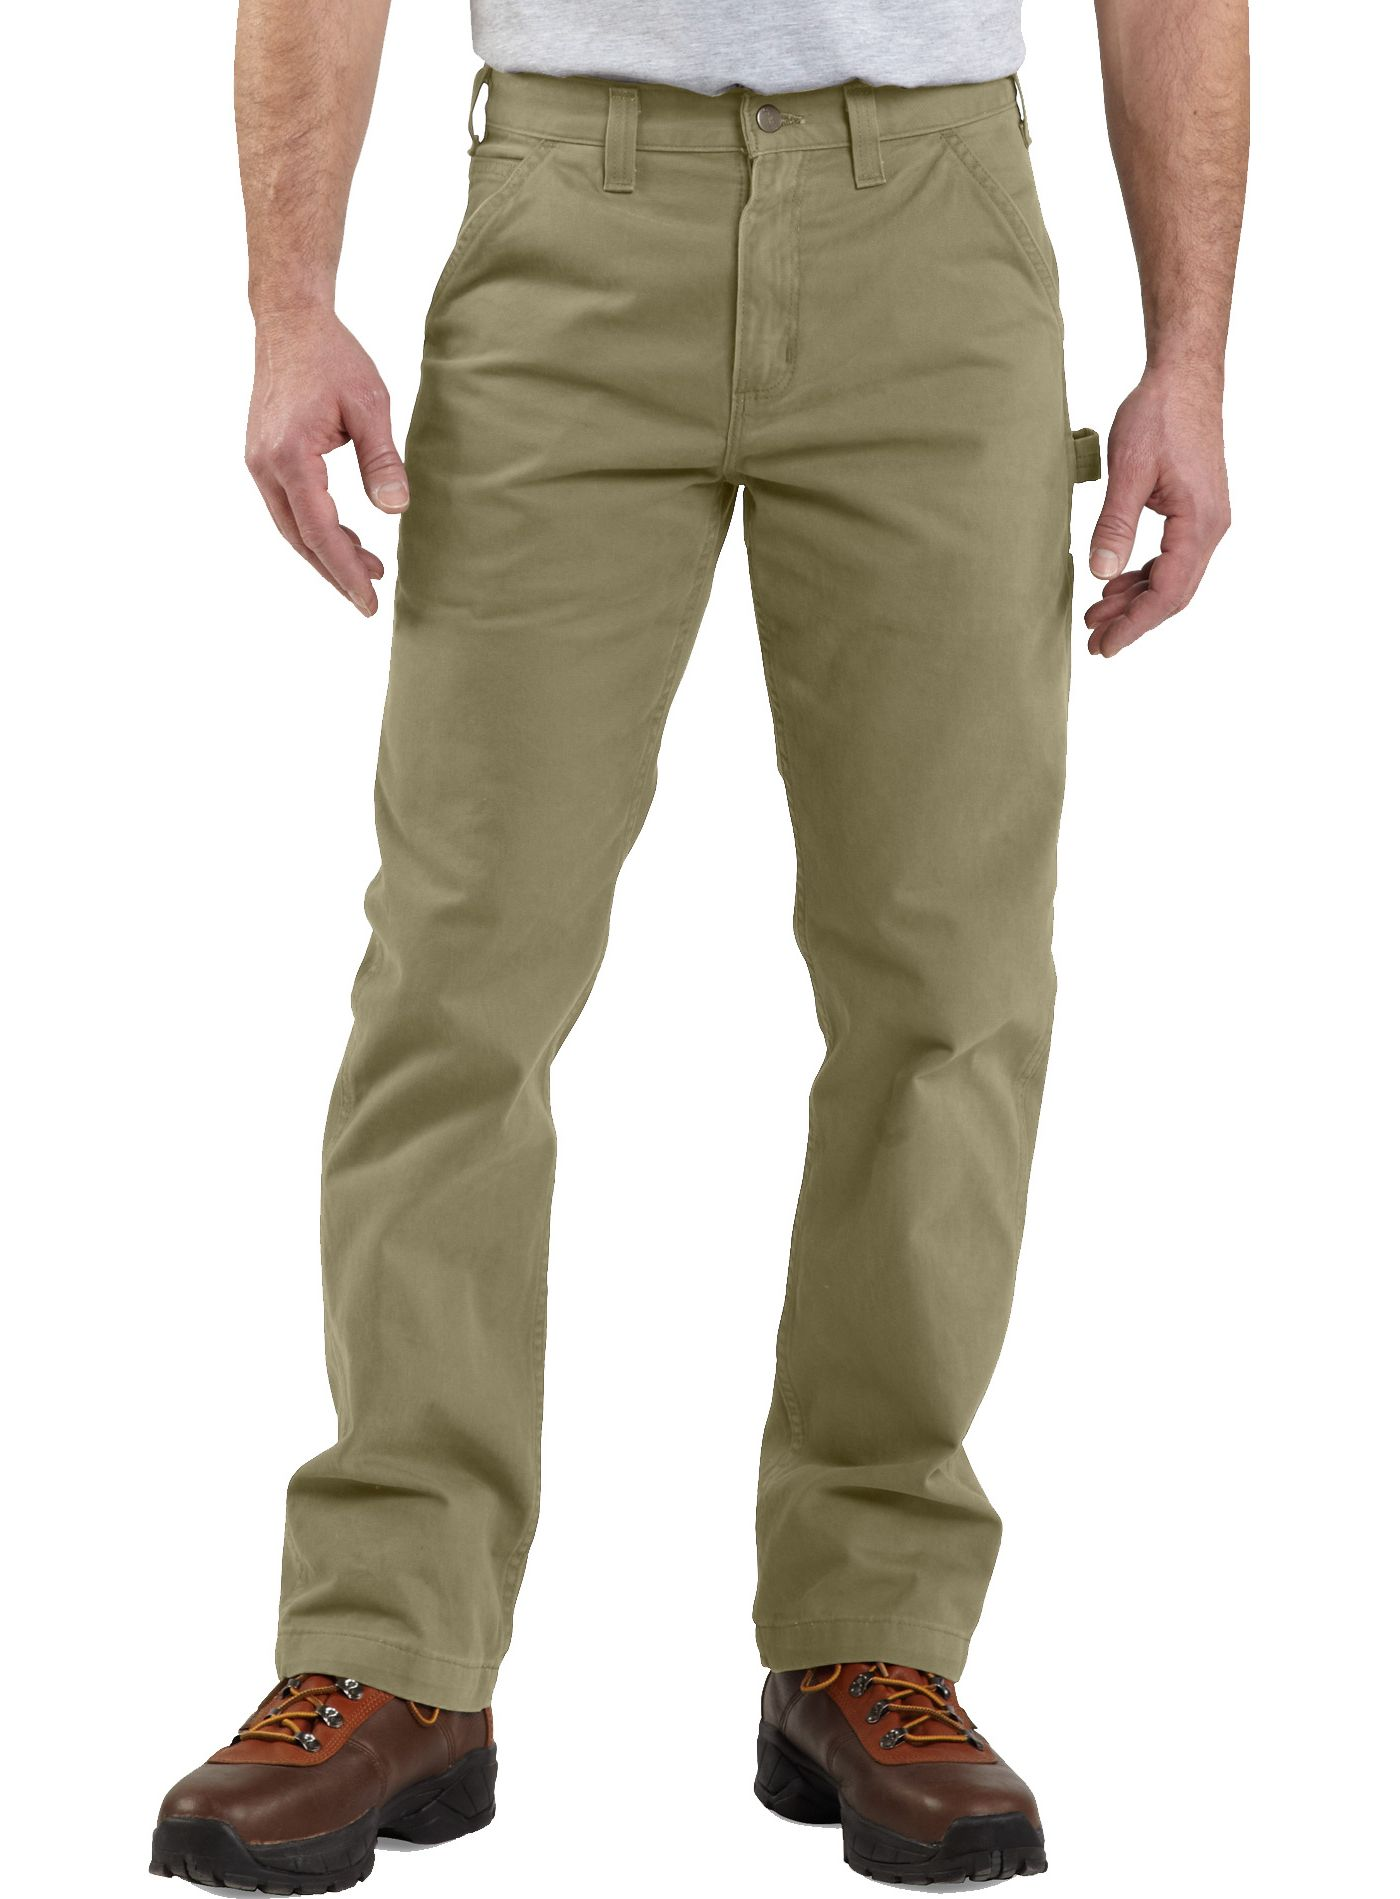 Carhartt Men's Washed Twill Dungarees (Regular and Big & Tall)